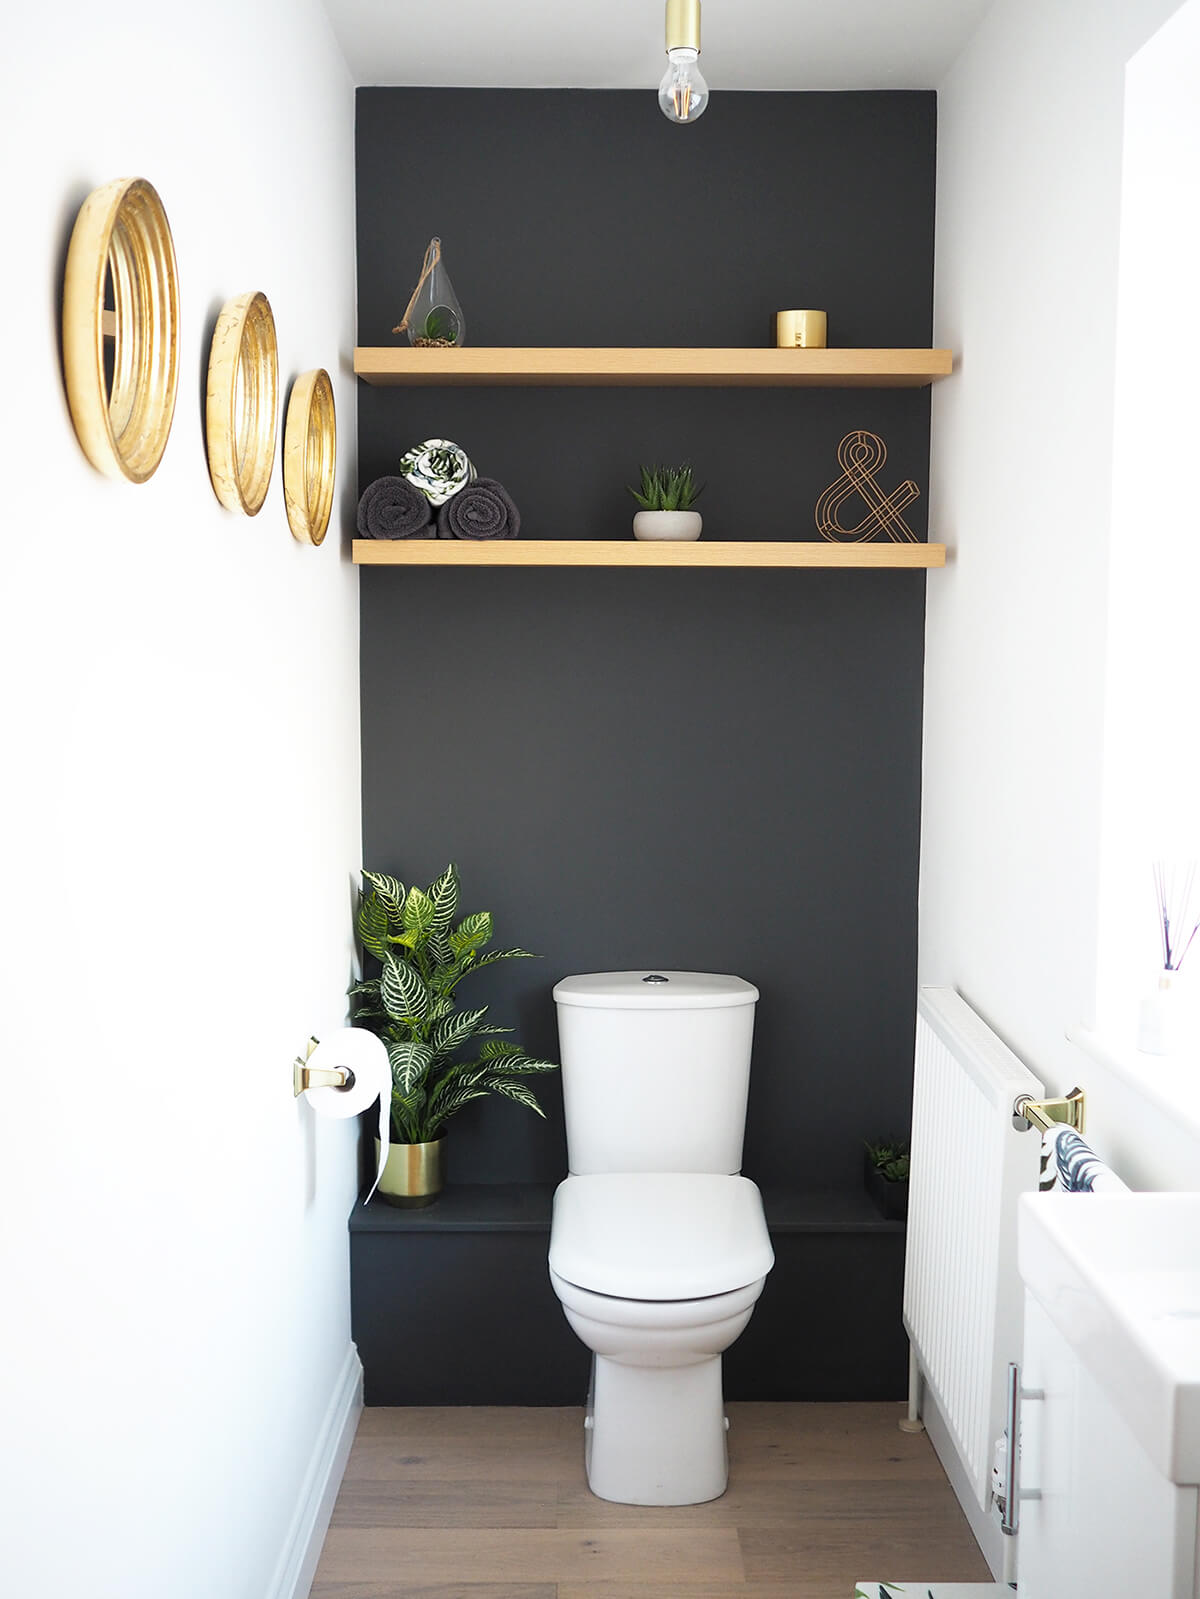 Tiny Powder Room Designs: 18 Best Powder Room Ideas And Designs For 2020